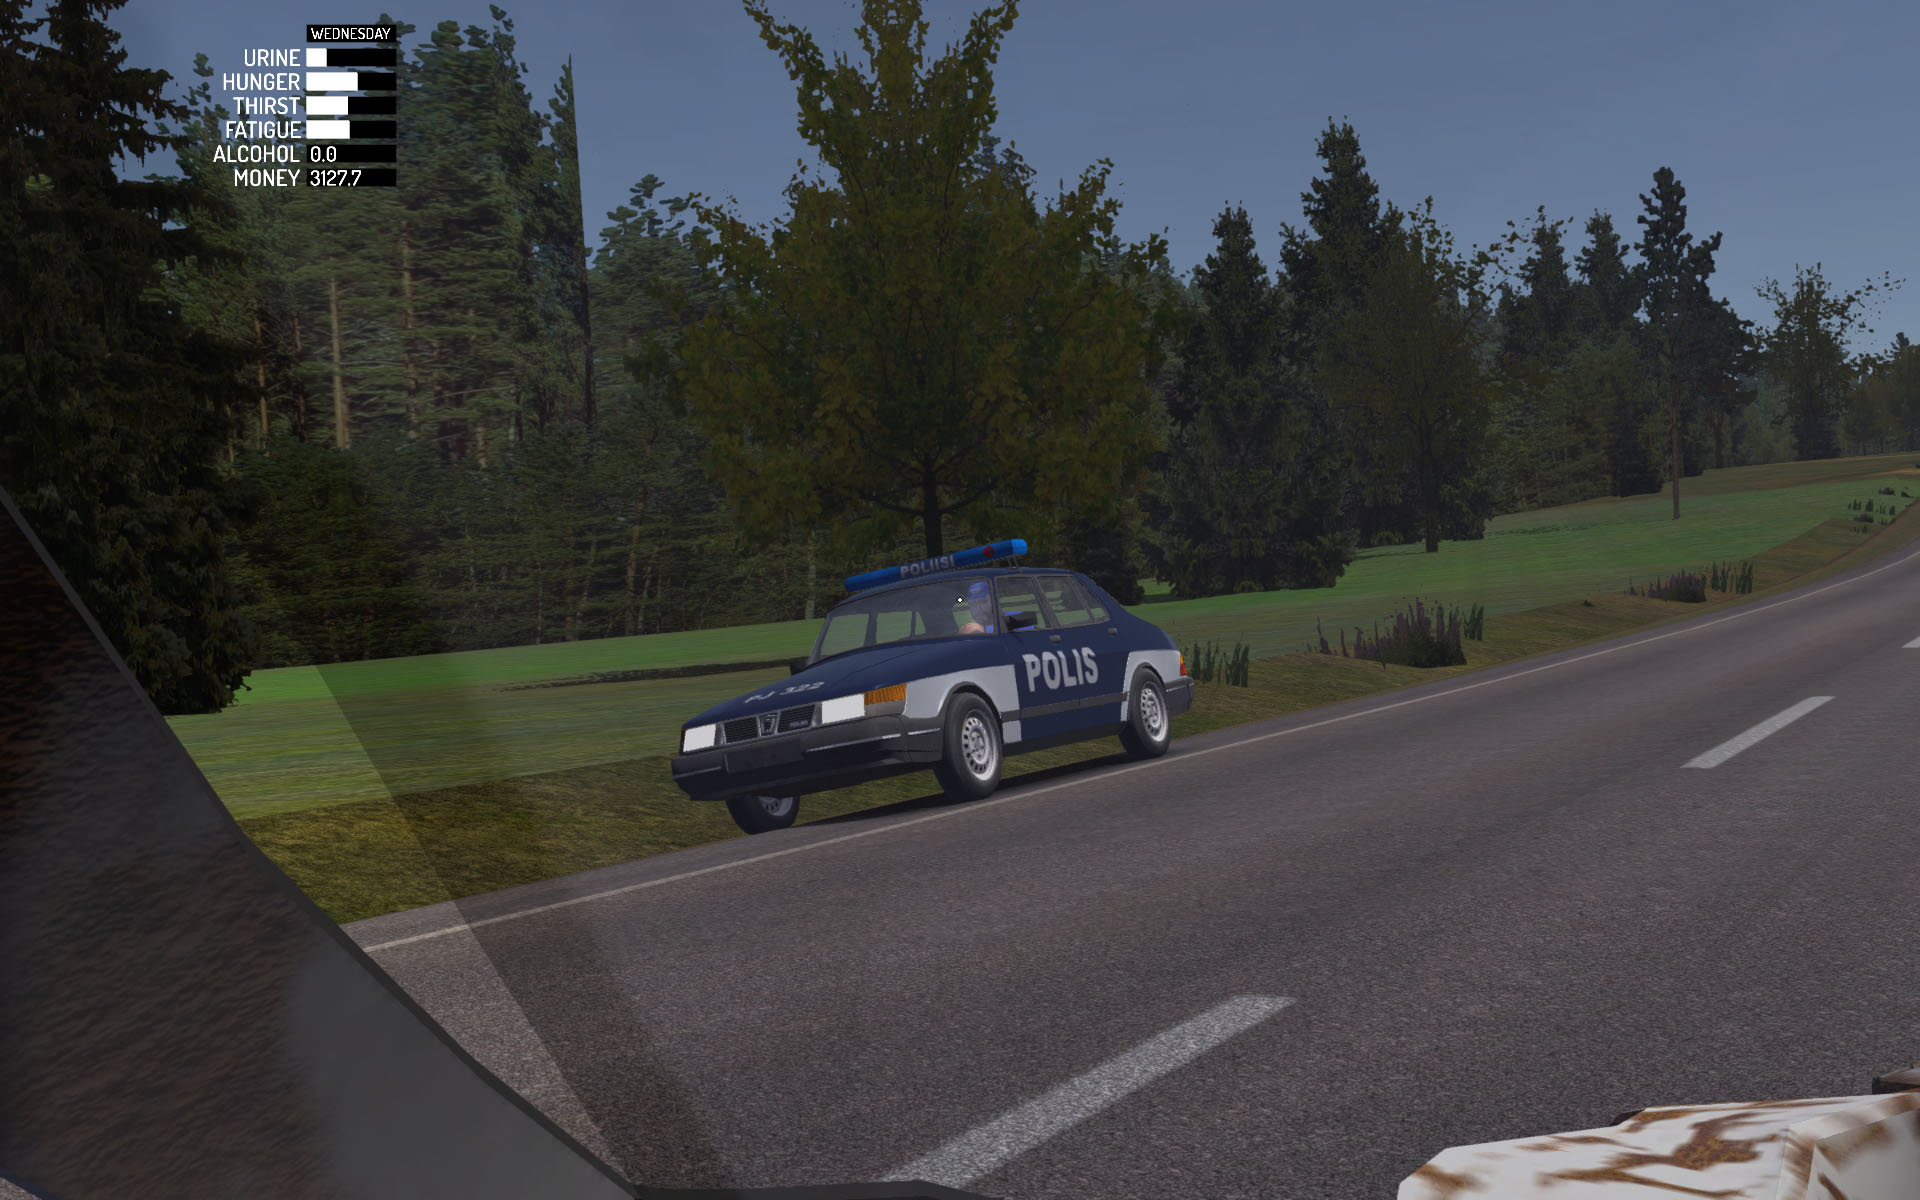 In-game screenshot of Finnish Saab 900 lookalike Police vehicle in My Summer Car.